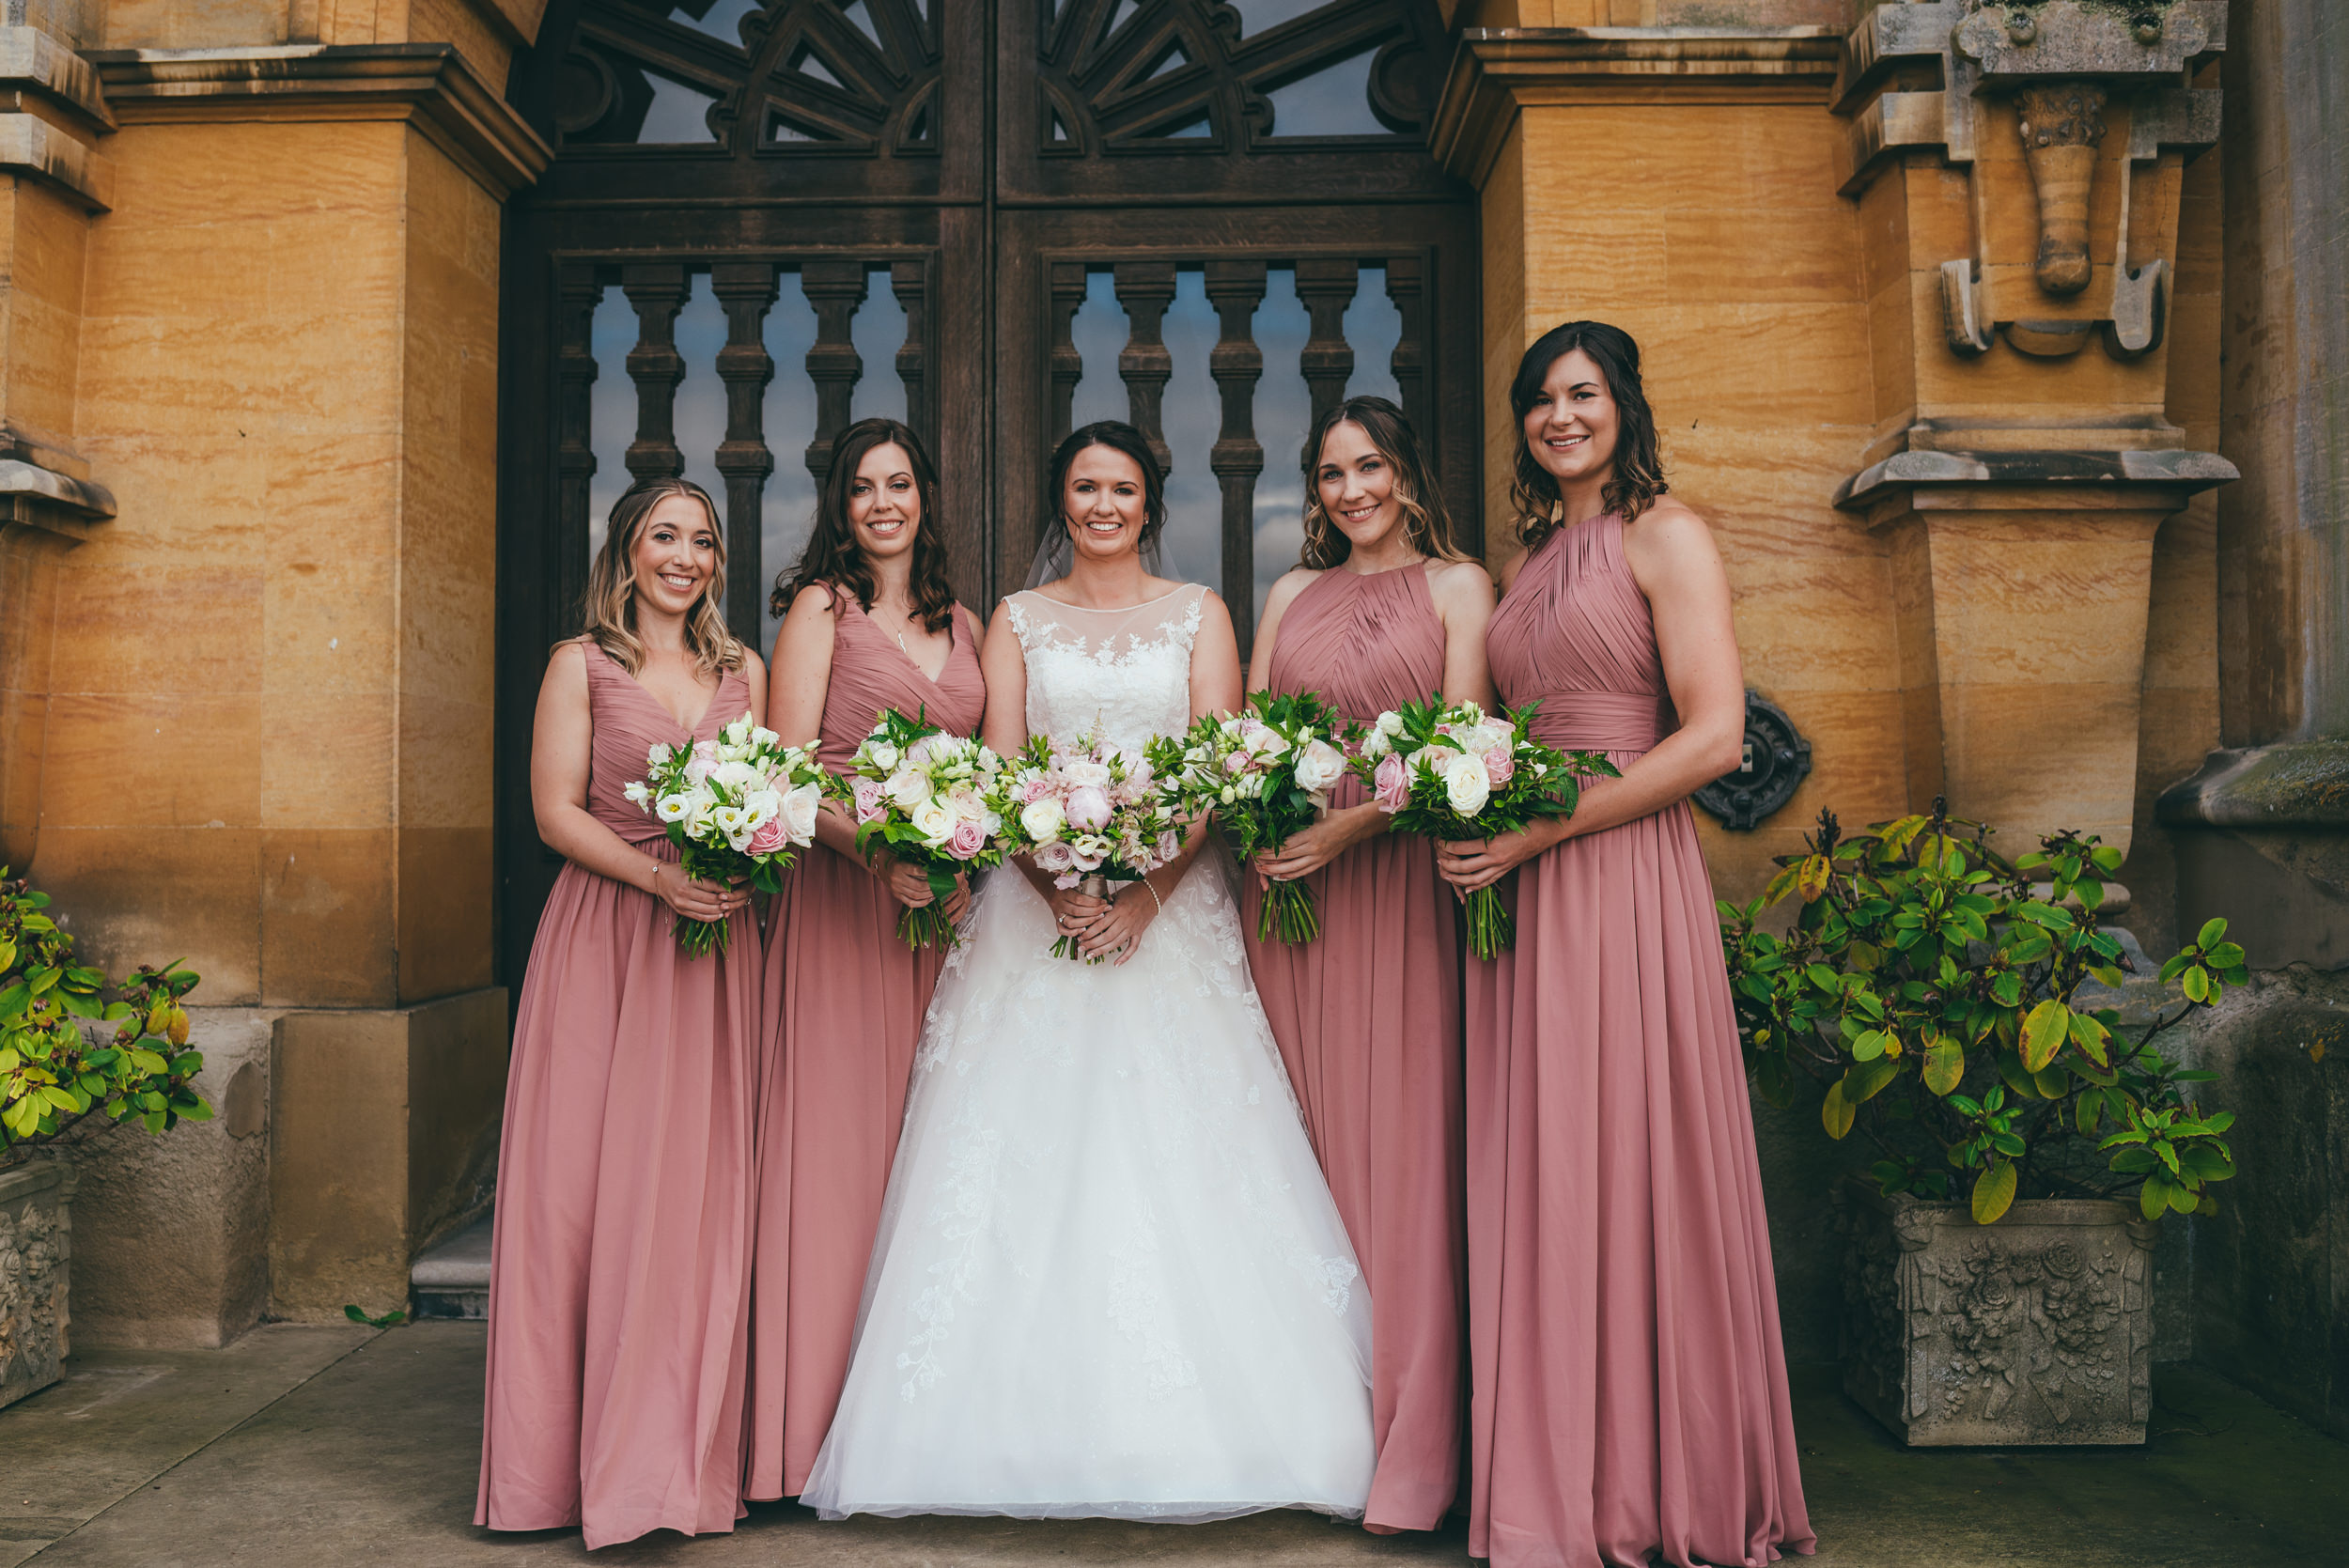 The bride and her bridesmaids at the front door at Harlaxton Manor